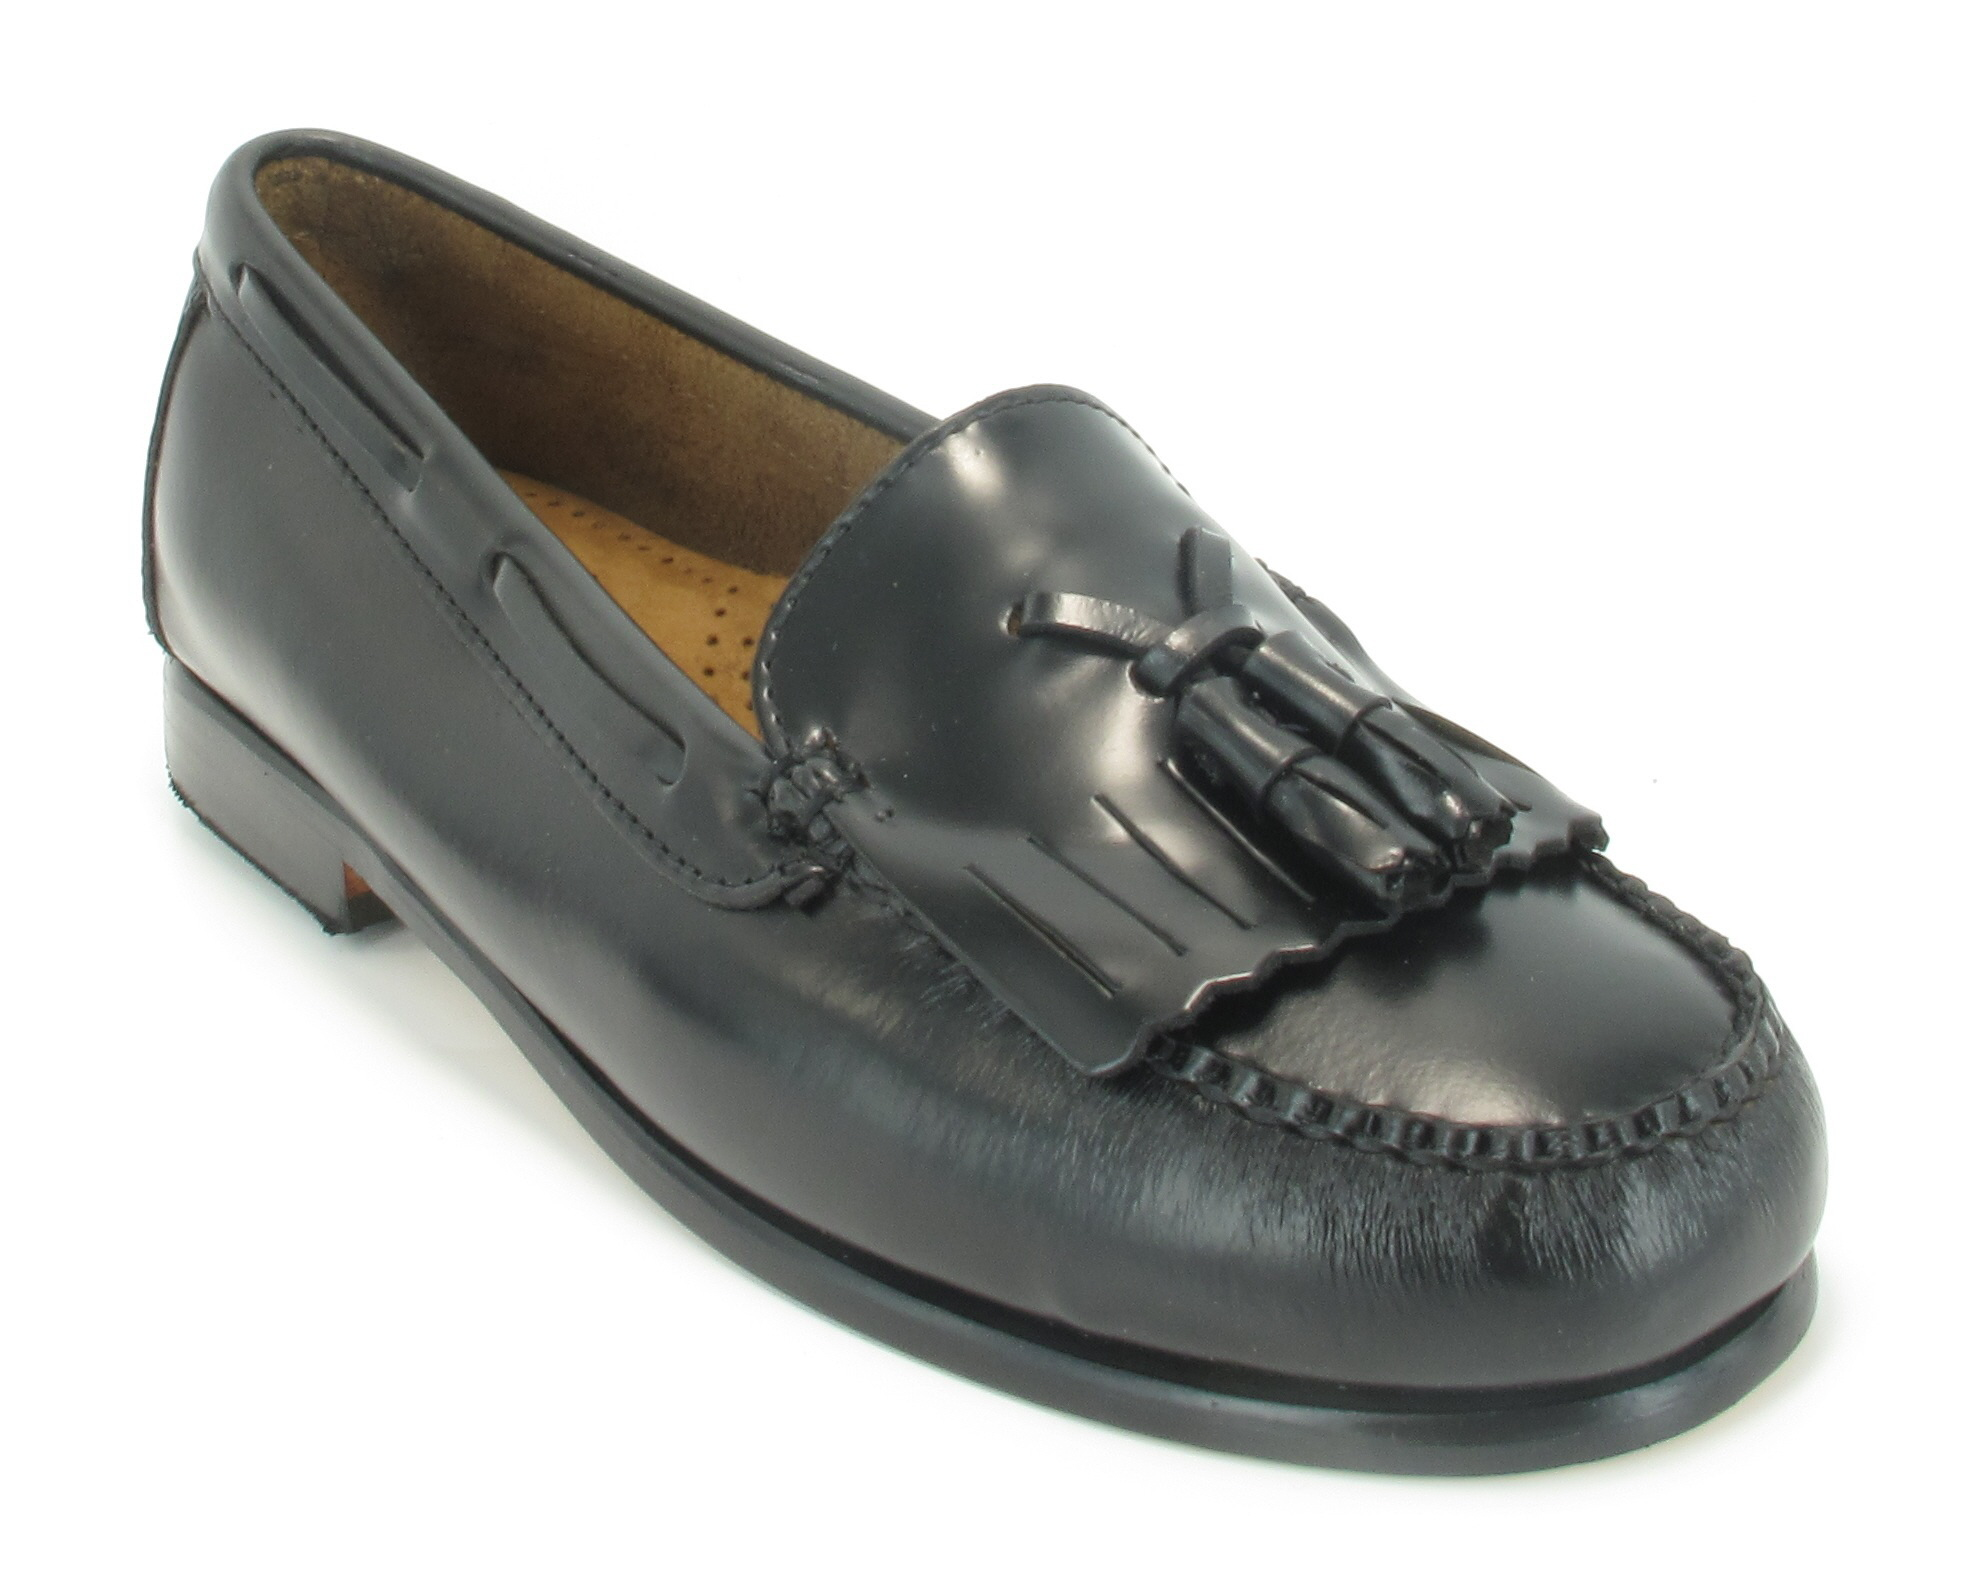 Womens-GH-Bass-Black-Leather-Tassel-Retro-Loafers-Slip-On-Shoes-MOD